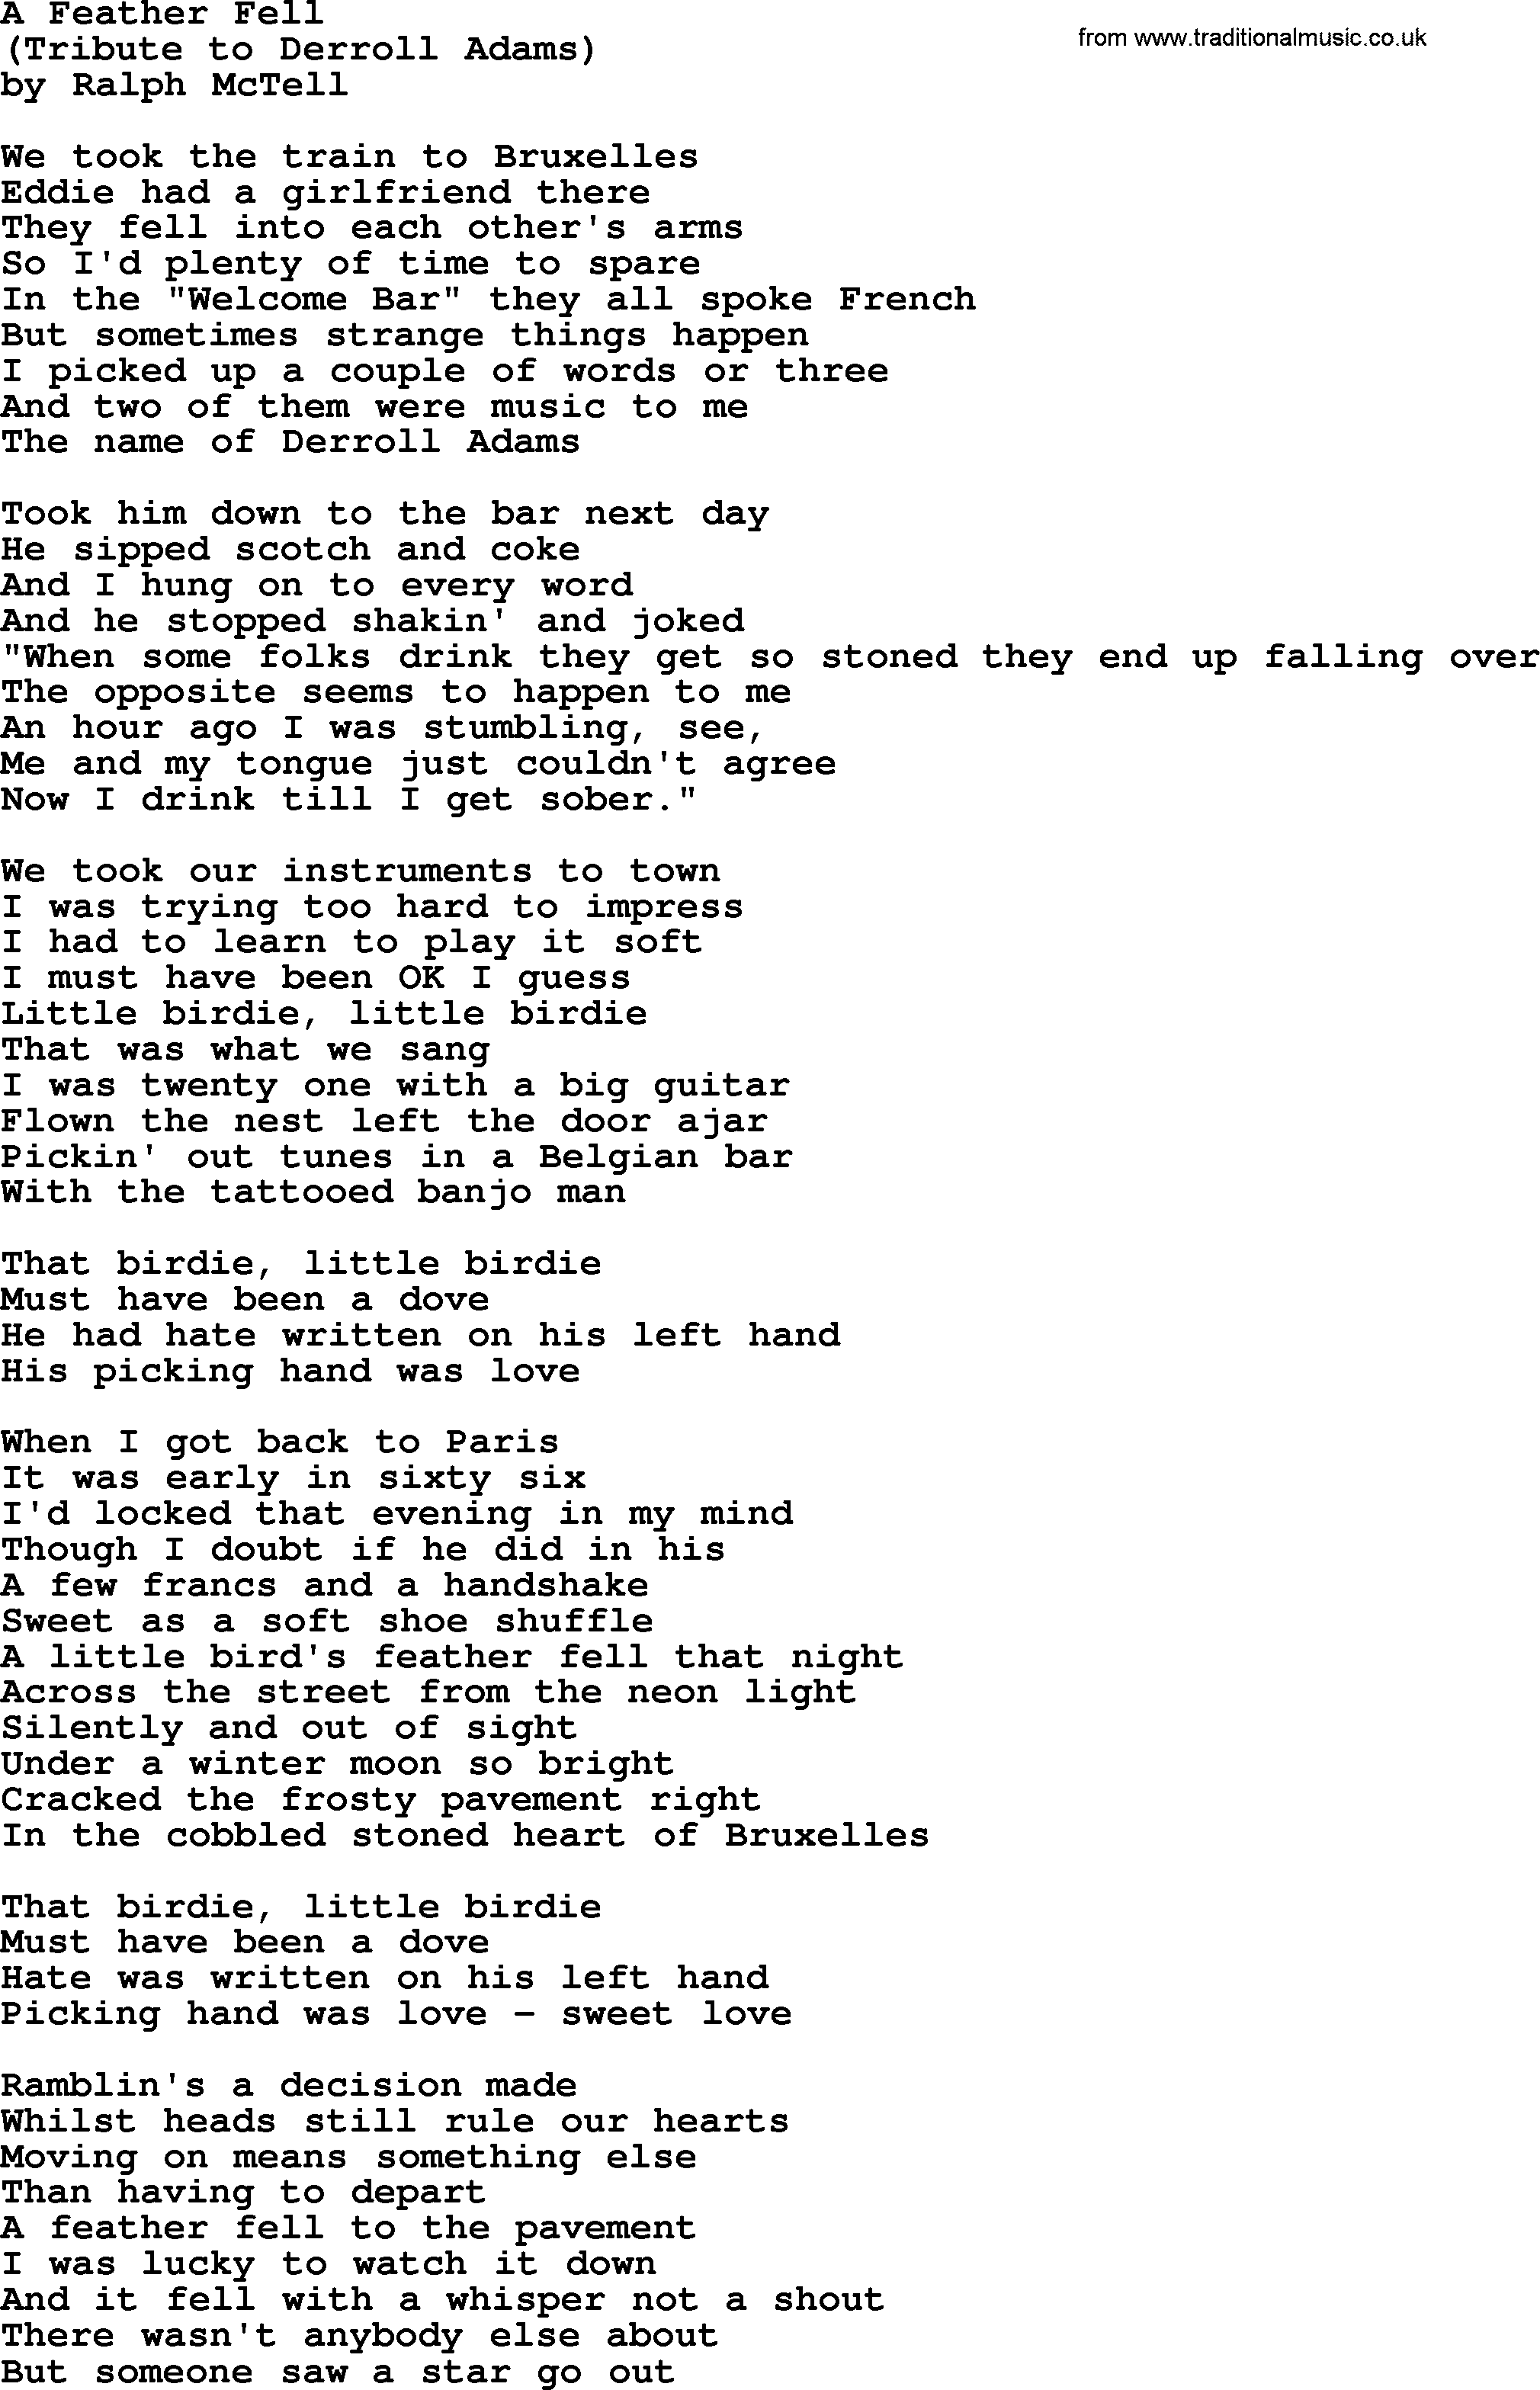 A feather felltxt by ralph mctell lyrics and chords ralph mctell song a feather fell lyrics hexwebz Image collections